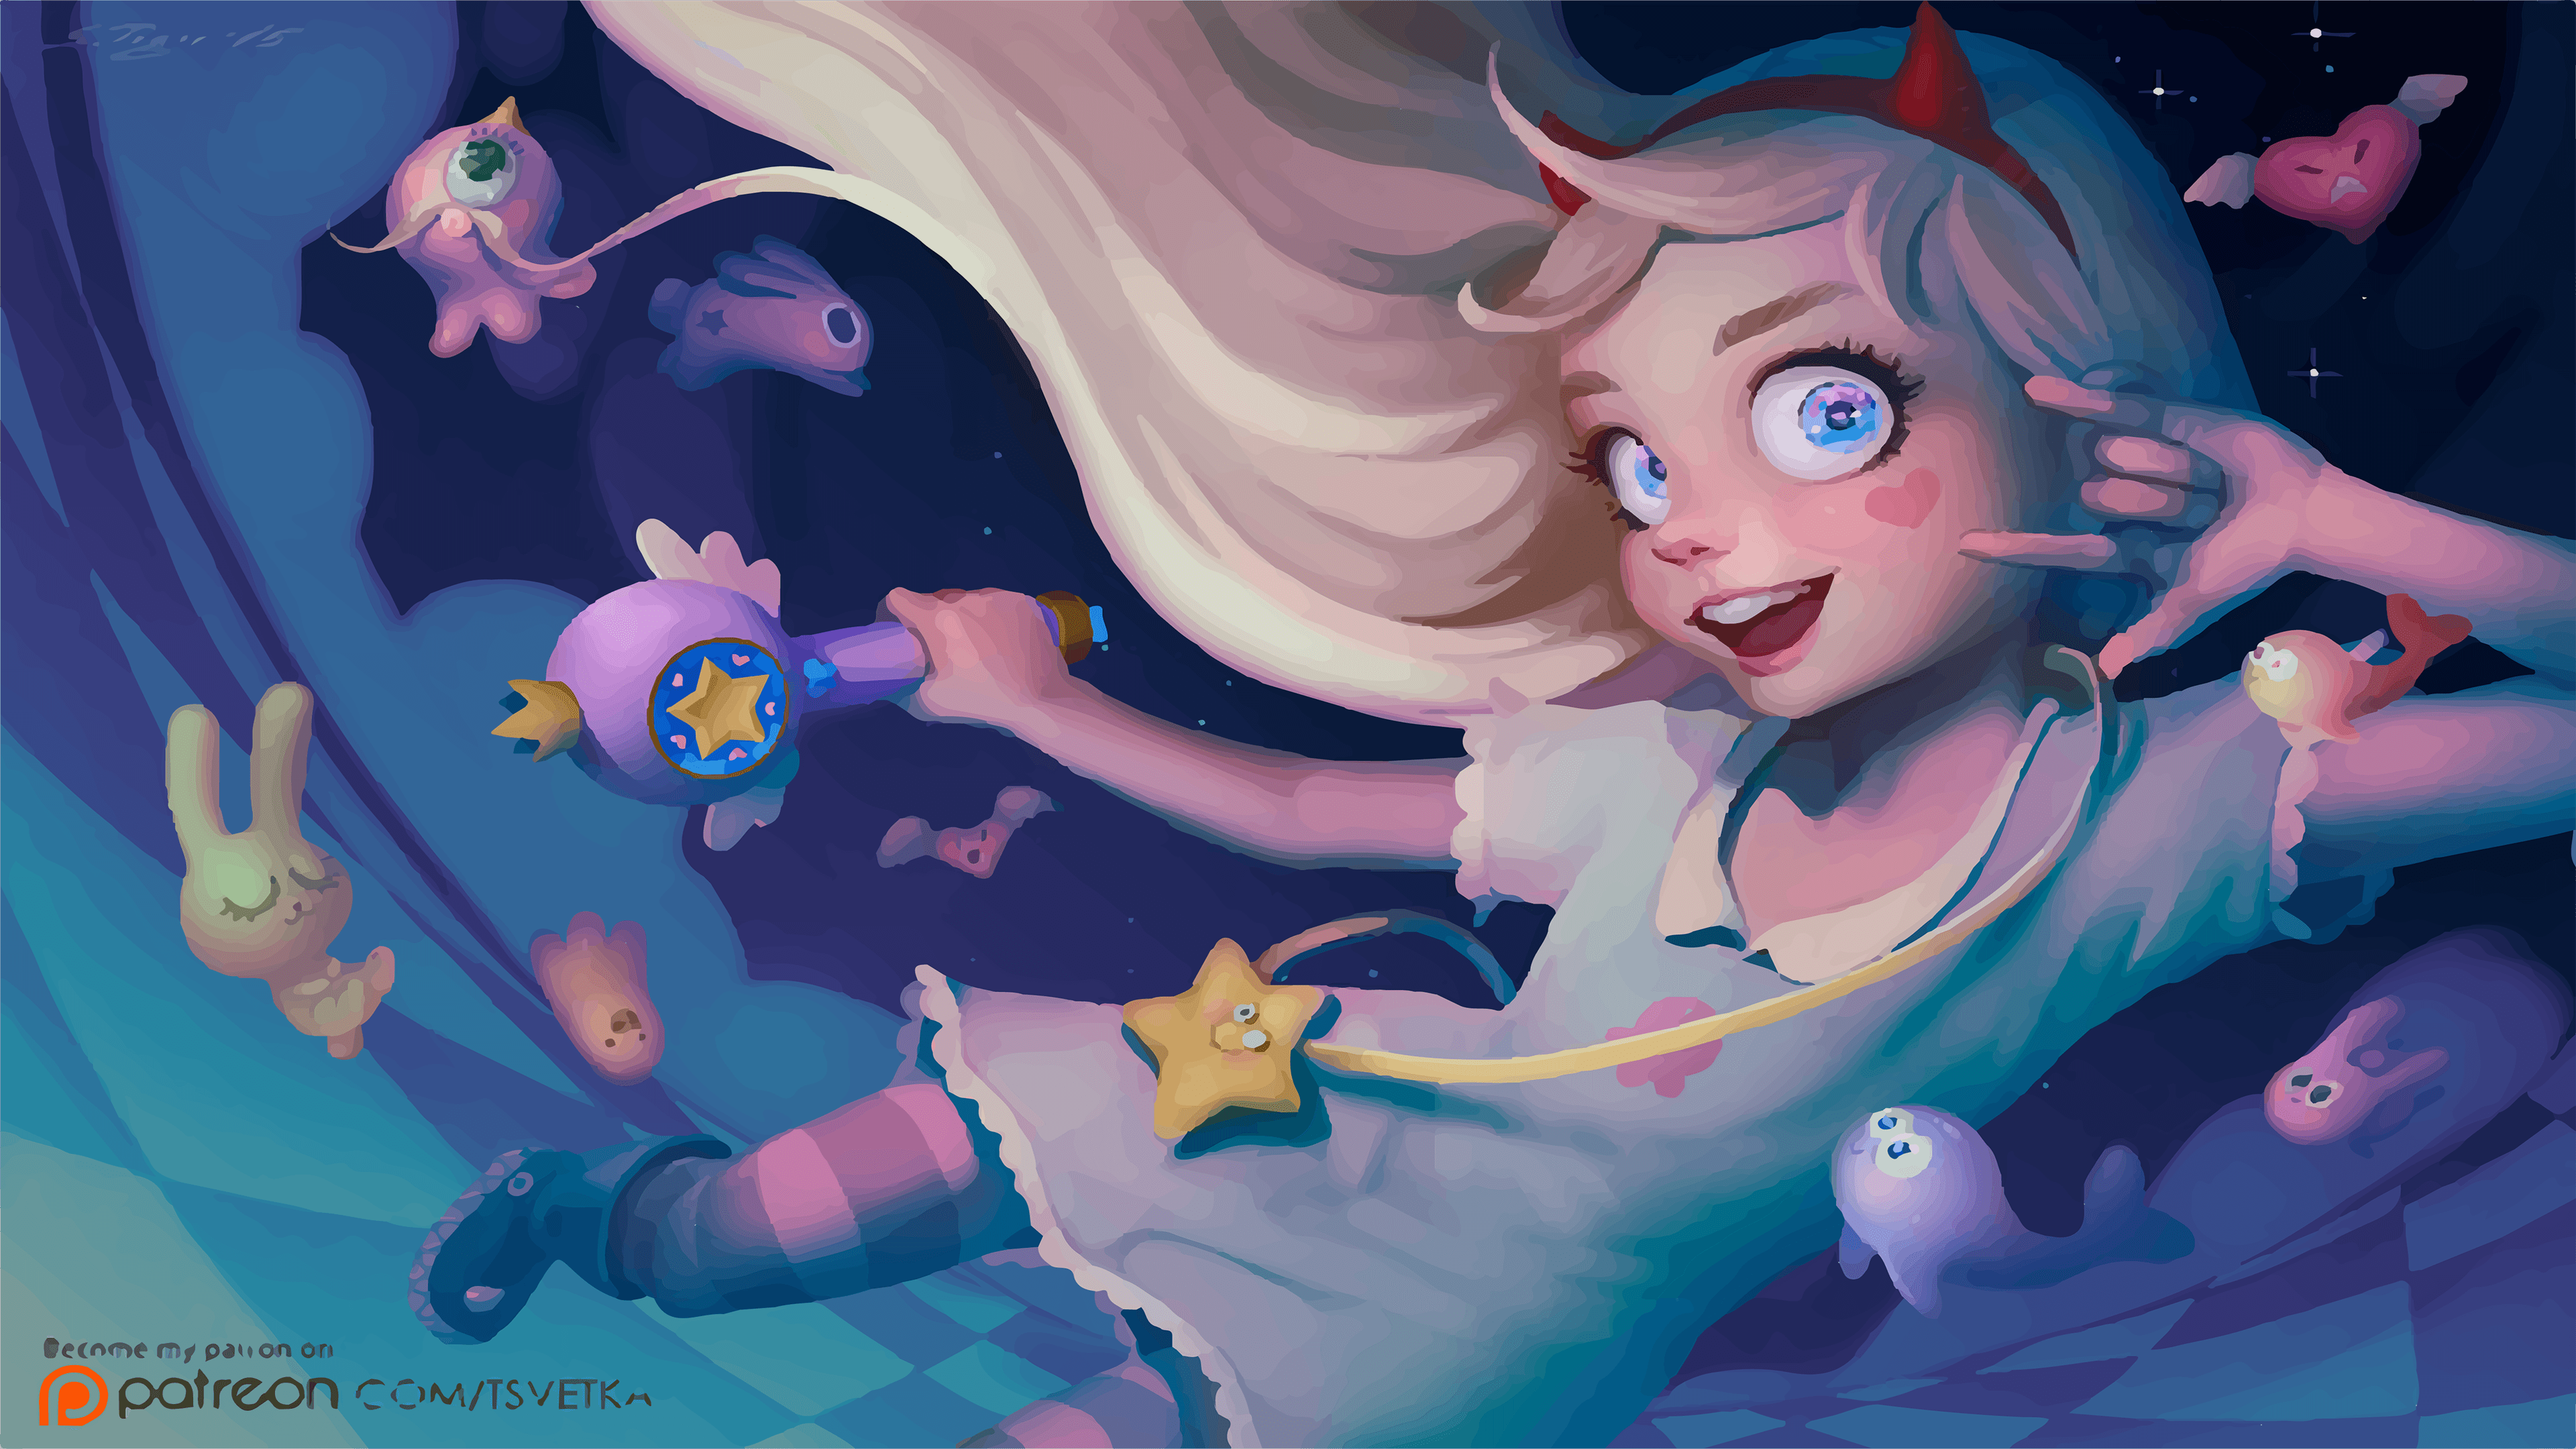 Star Vs. The Forces Of Evil Wallpapers - Wallpaper Cave